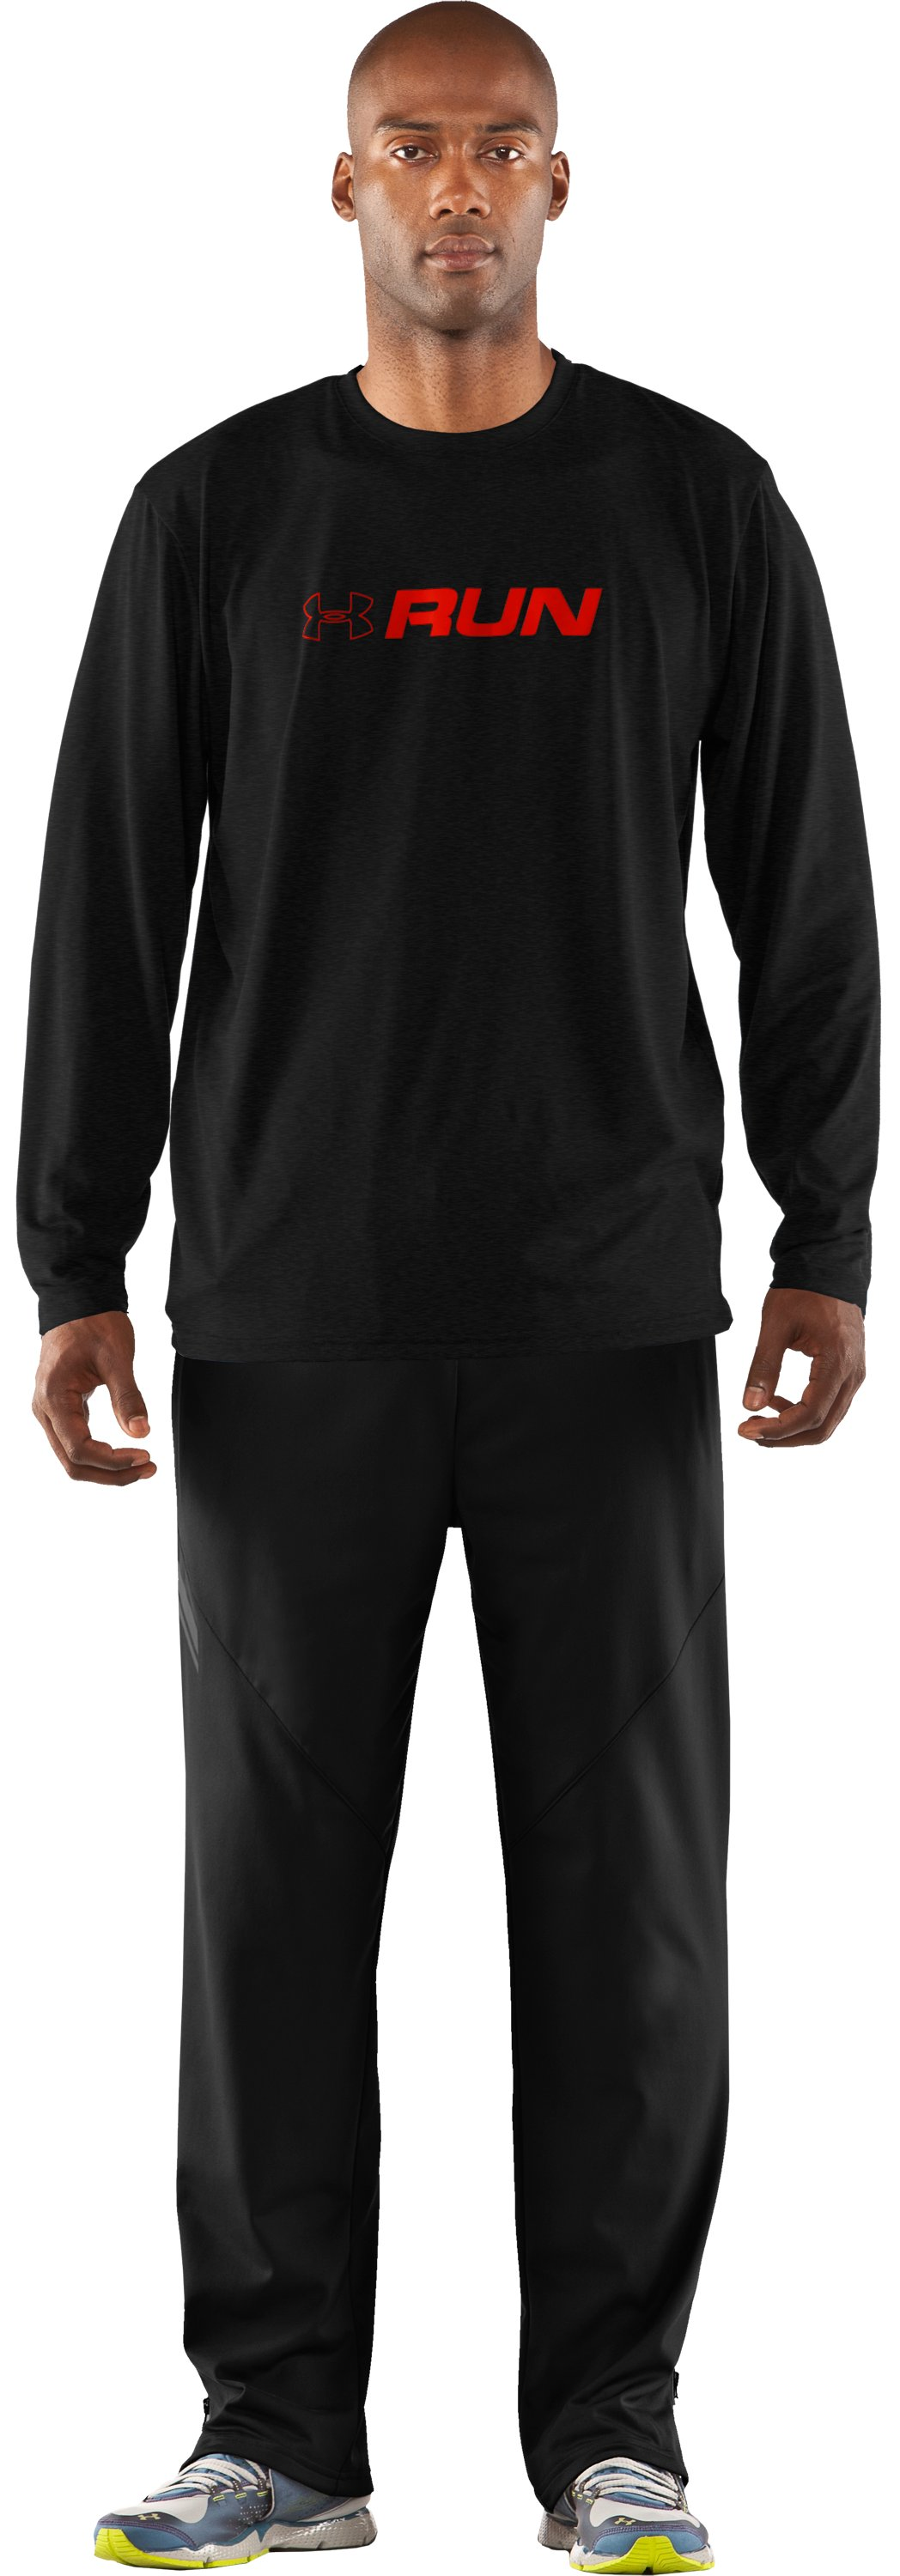 Men's UA Run Long Sleeve Graphic T-Shirt, Asphalt Heather, Front